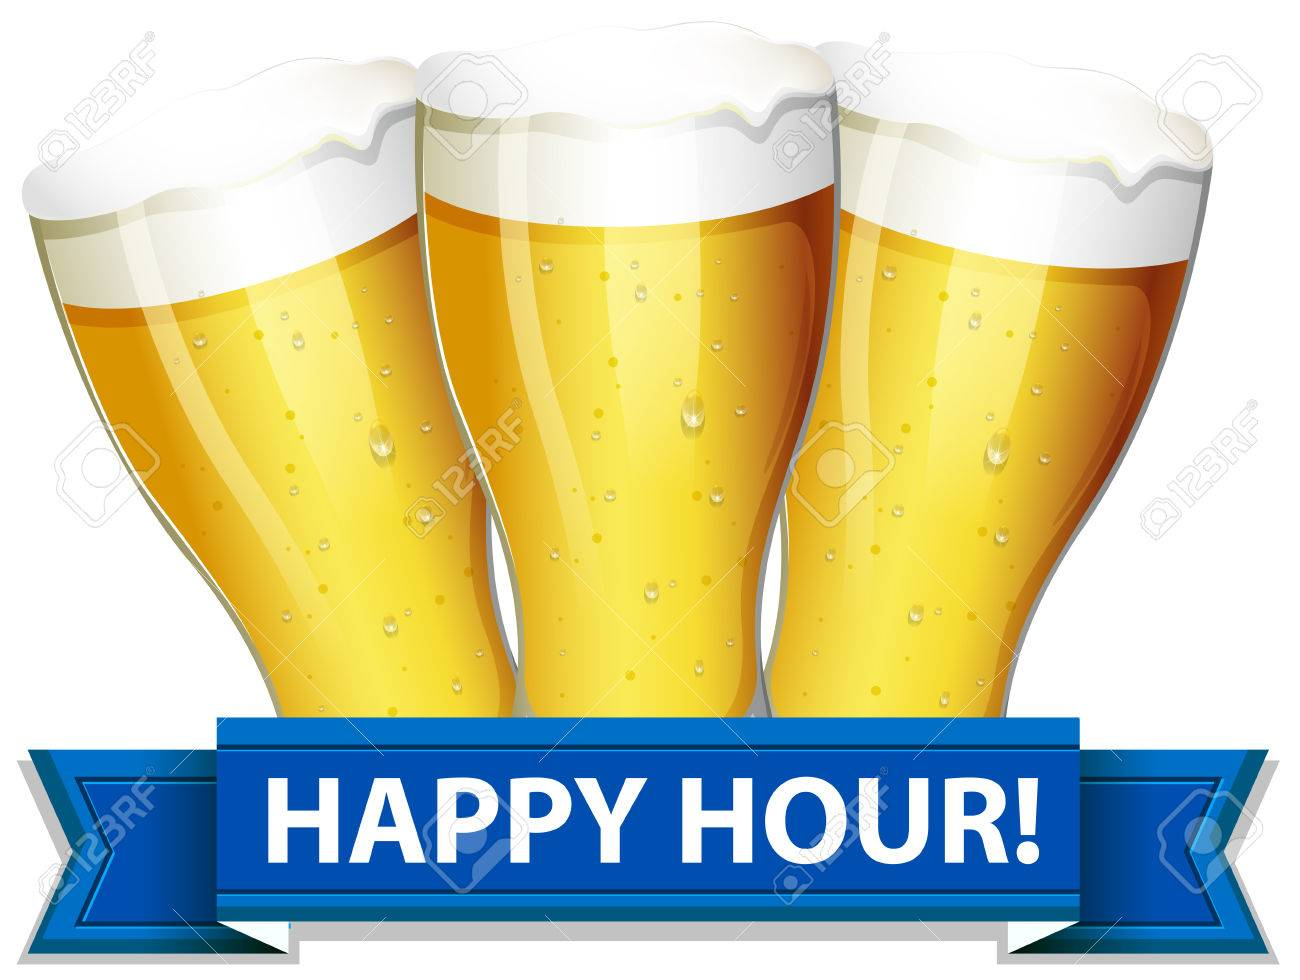 A Happy Hour Template With Glasses Of Beers On A White Background ...